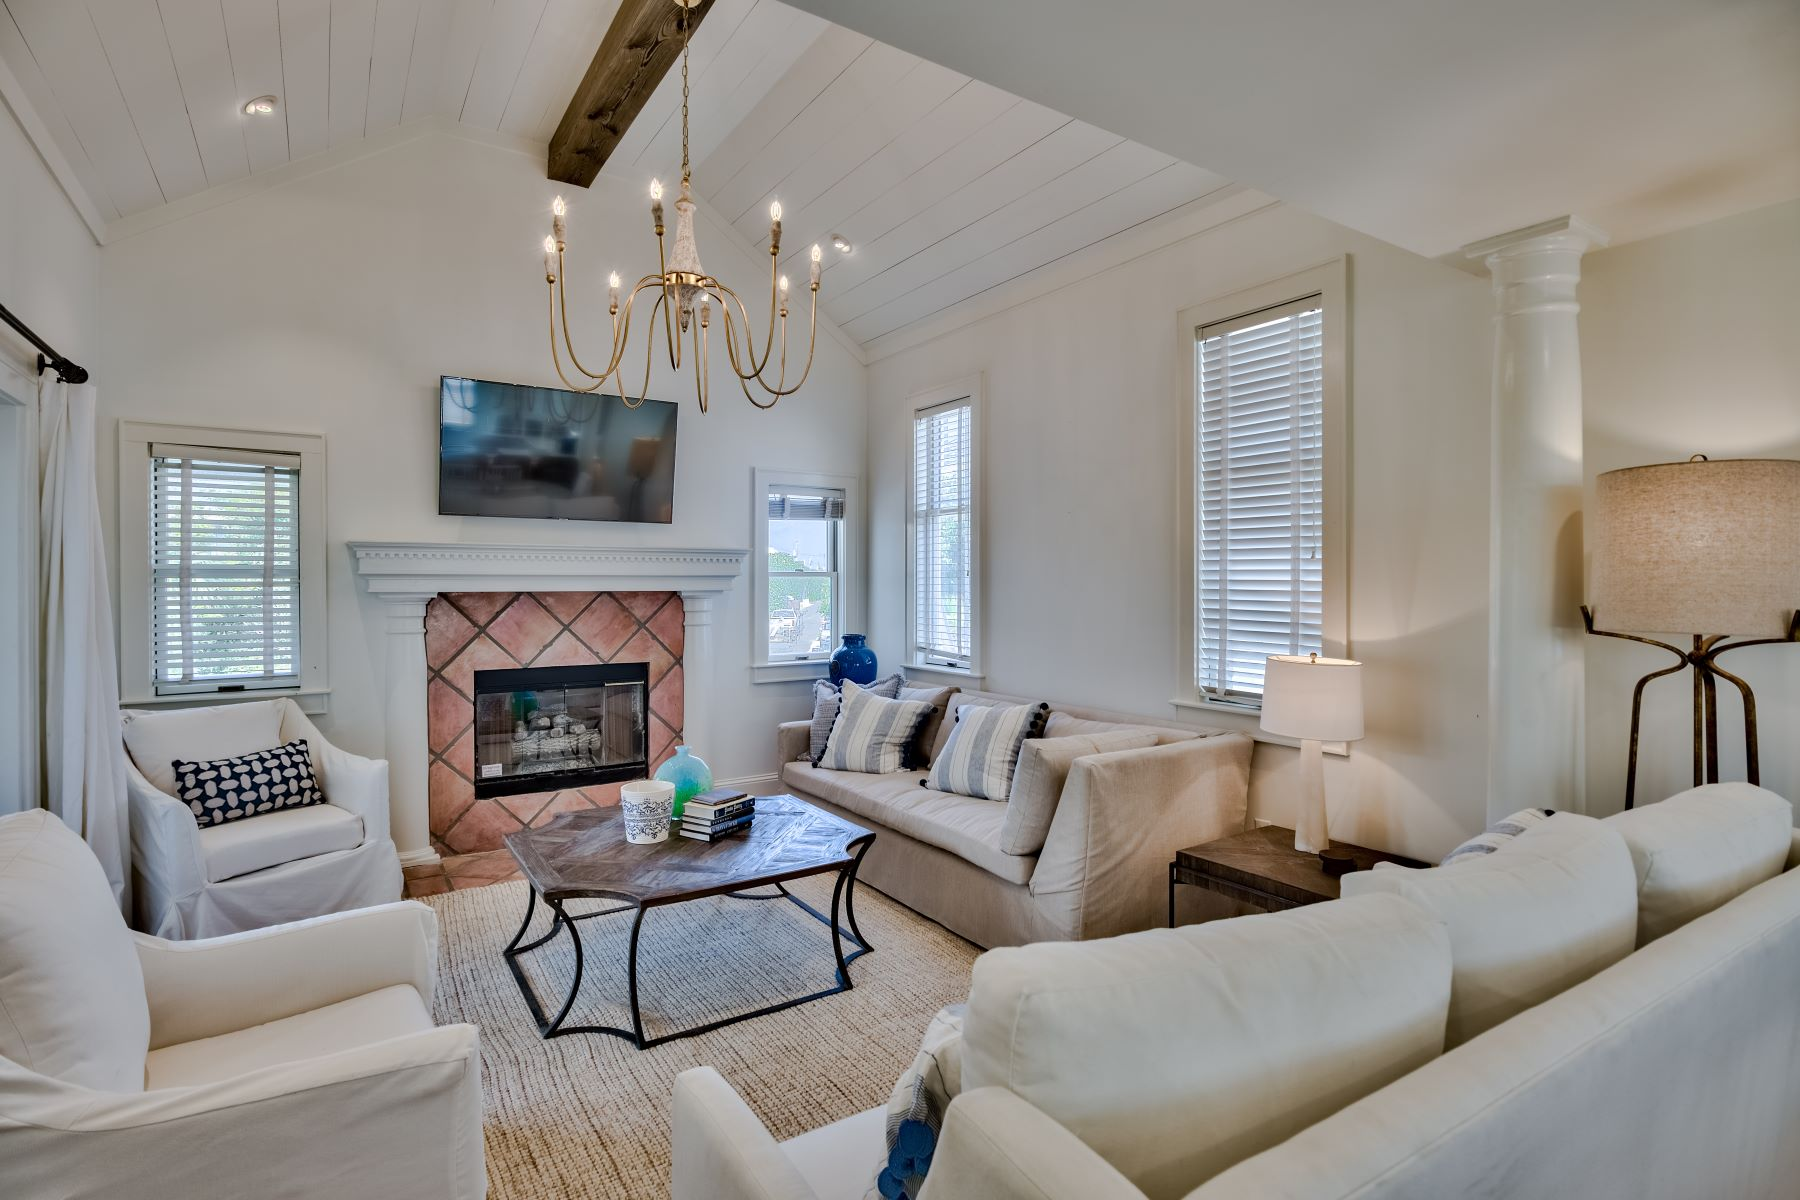 Property for Sale at Remodeled Home South of 30A 20 Periwinkle Lane, Santa Rosa Beach, Florida 32459 United States